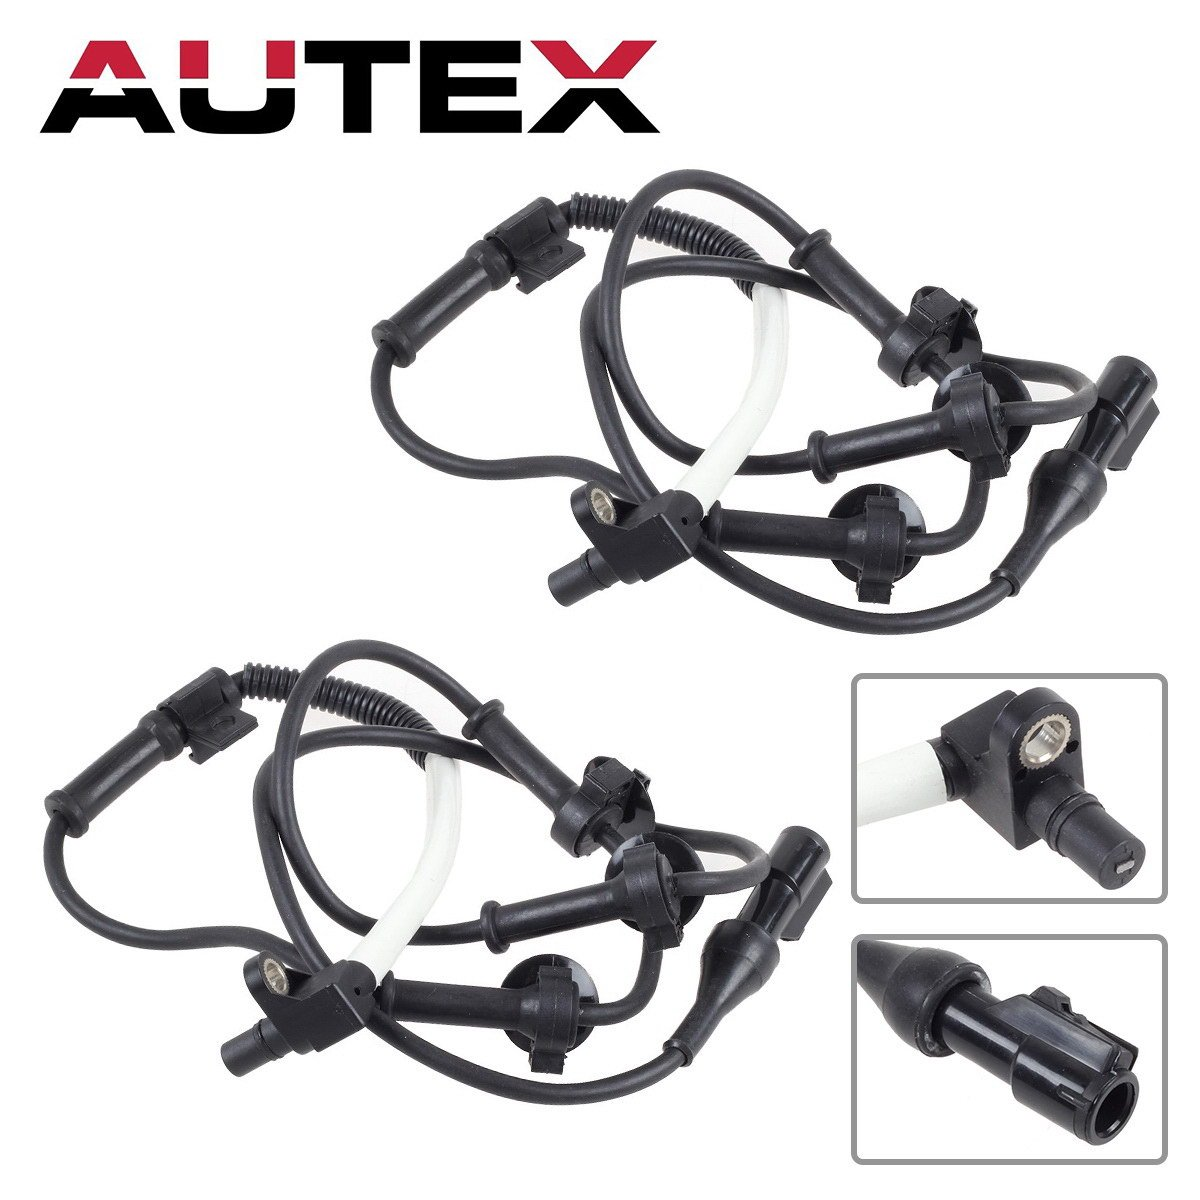 Best Rated in Automotive Replacement Anti-Lock ke Sensors ... on bronco ii wiring diagram, 1999-2004 mustang wiring diagram, crown vic wiring diagram, f150 wiring diagram, sport trac parts catalog,